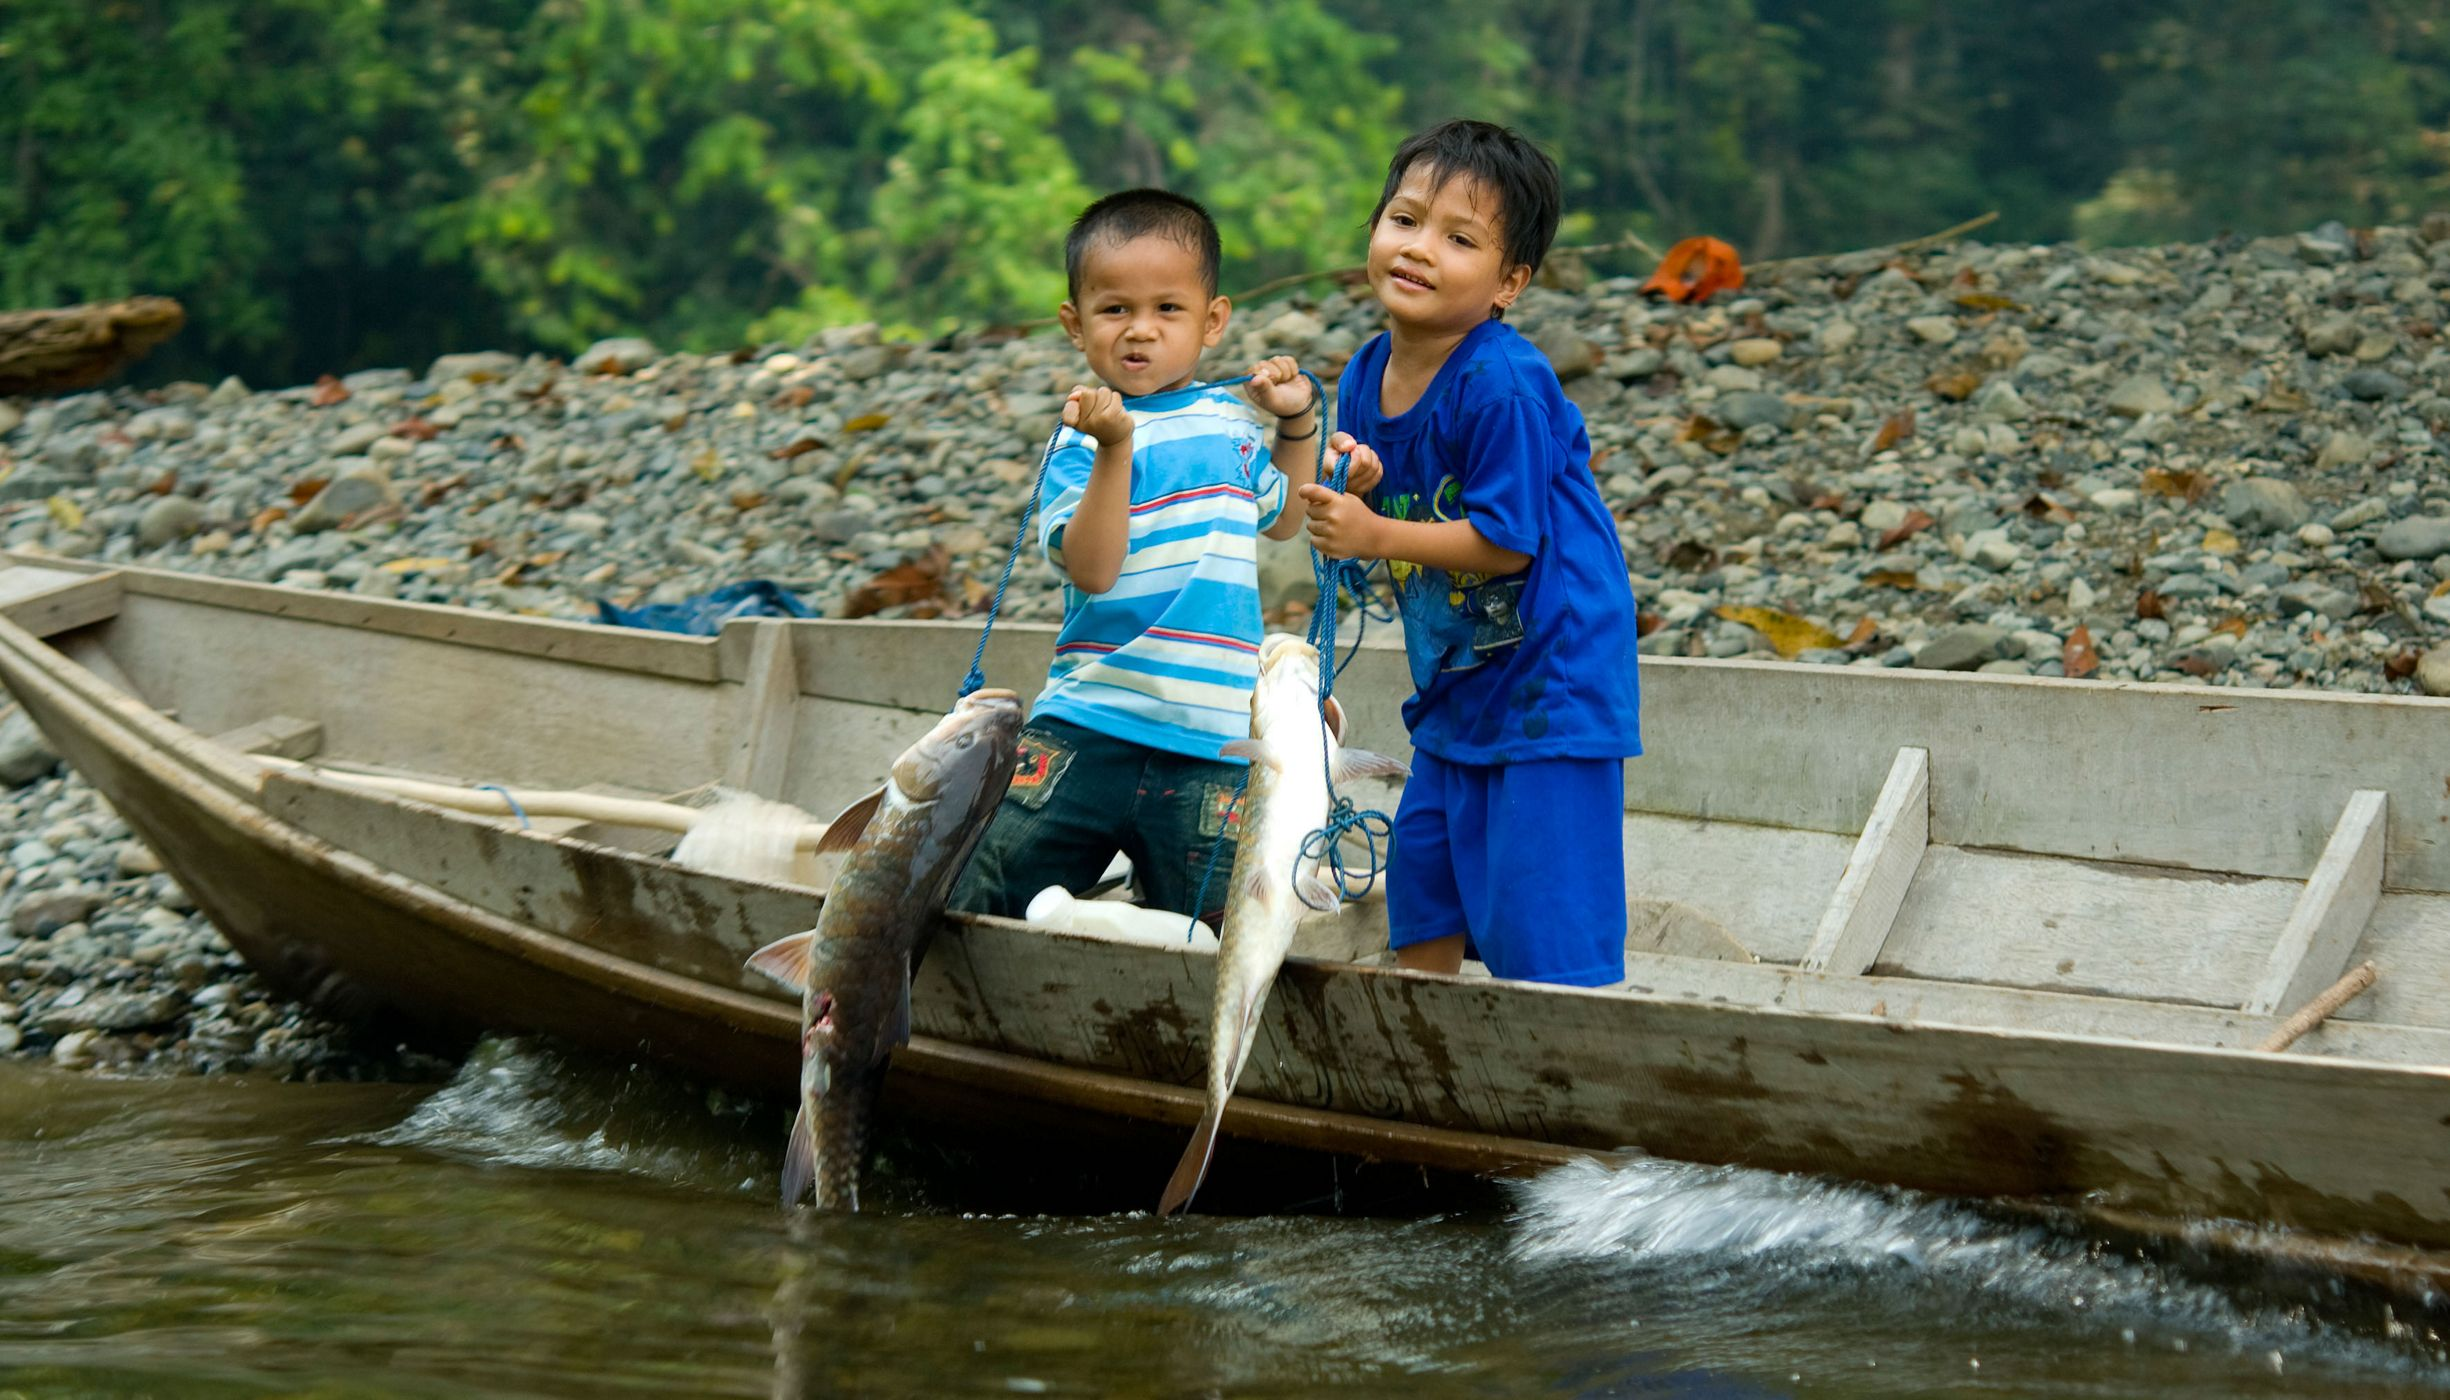 Village children display freshly caught fish at the Long Laay village on the banks of the Sagah River in the Bornean forest of the Berau district, East Kalimantan, Borneo, Indonesia. The Nature Conservancy is working with partners and villagers in the Bornean forests of the Berau district for reduced-impact logging. Surprisingly simple changes to how a company logs a forest can yield more intact forests, cleaner water, healthier and happier local villagers, and, on a global scale, more trees sequestering carbon and fighting climate change.